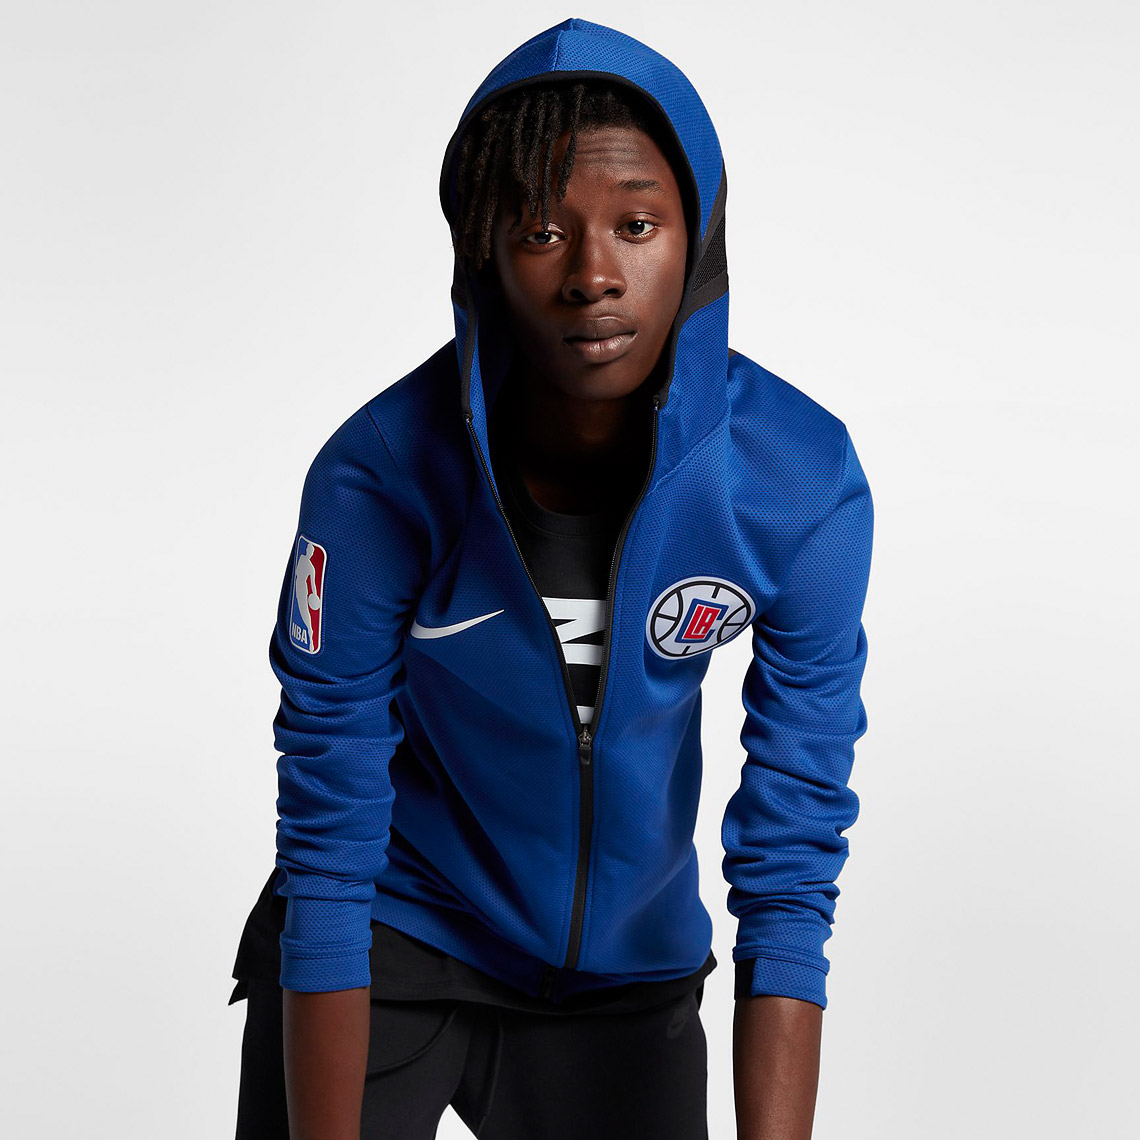 la-clippers-therma-flex-showtime-mens-nba-hoodie-q8RwlG